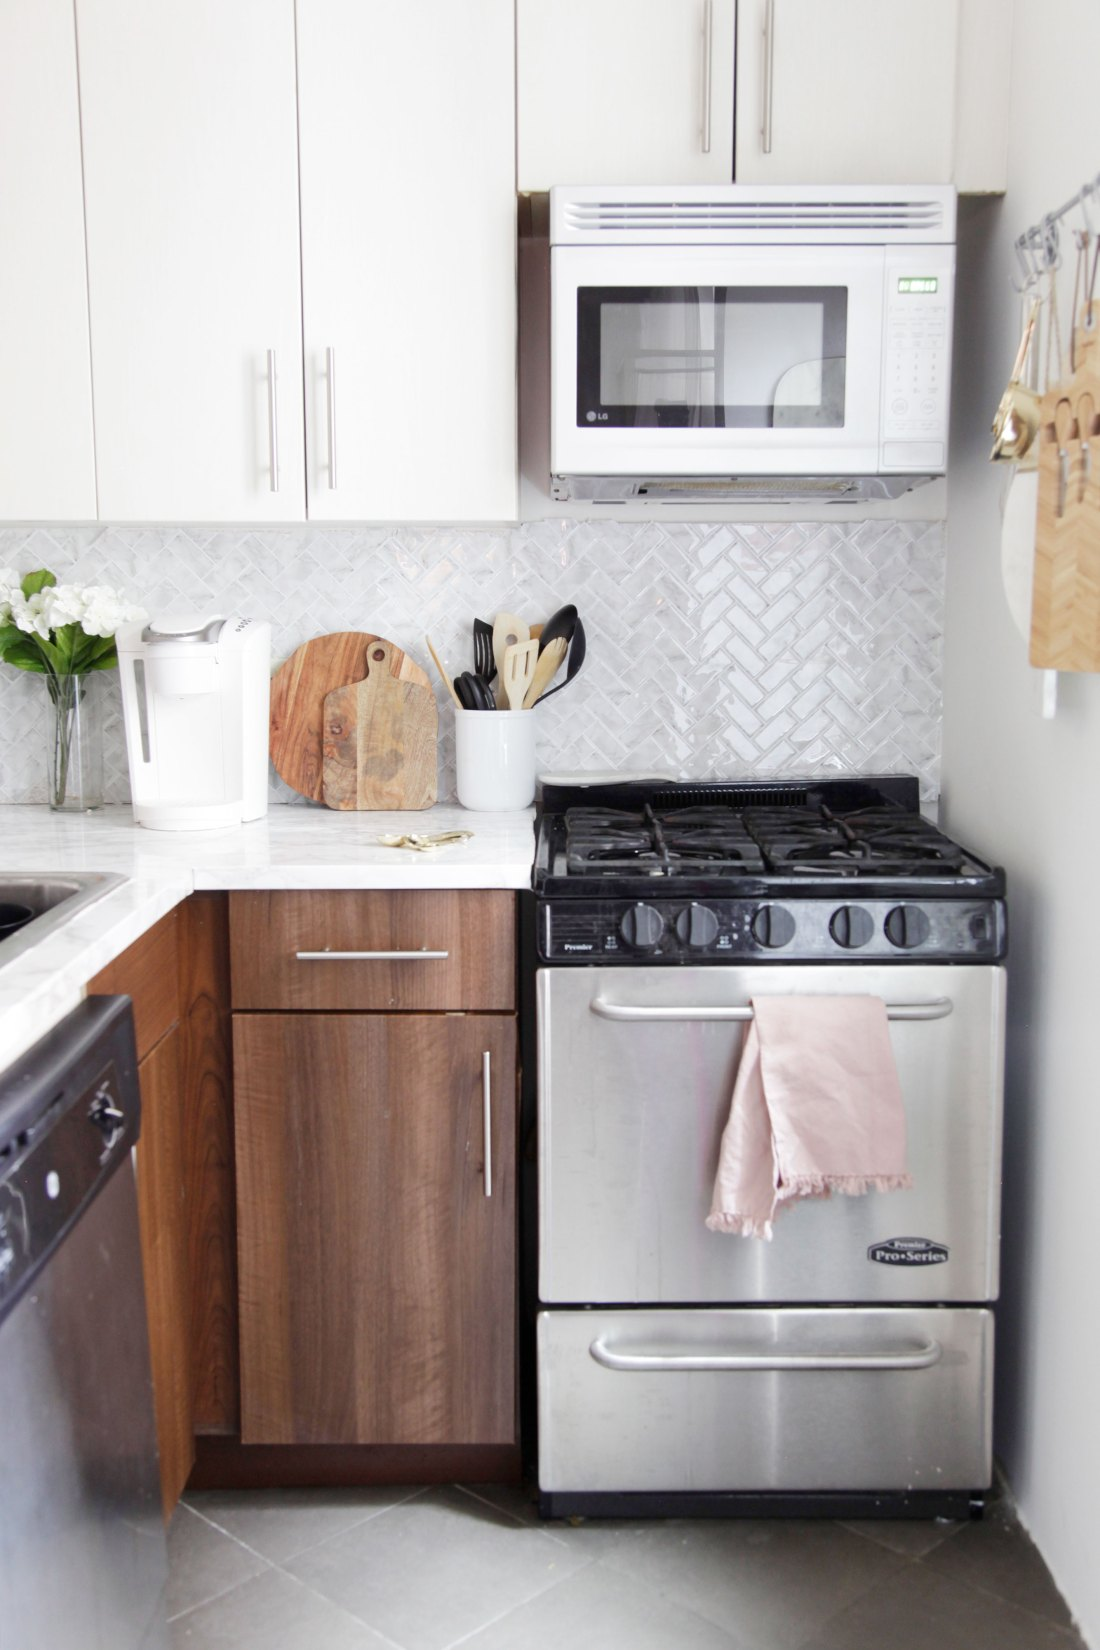 Have an ugly rental kitchen and dream of having a marble kitchen? Use these temporary solutions to create a kitchen that all your guests will drool over! #rentalkitchenmakeover #kitchenideas #smallkitchenideas #kitchenideasonabudget #rentalhomedecorating #rentaldecorating #rentalapartmentdecorating #rentalhomedecoratingdiy